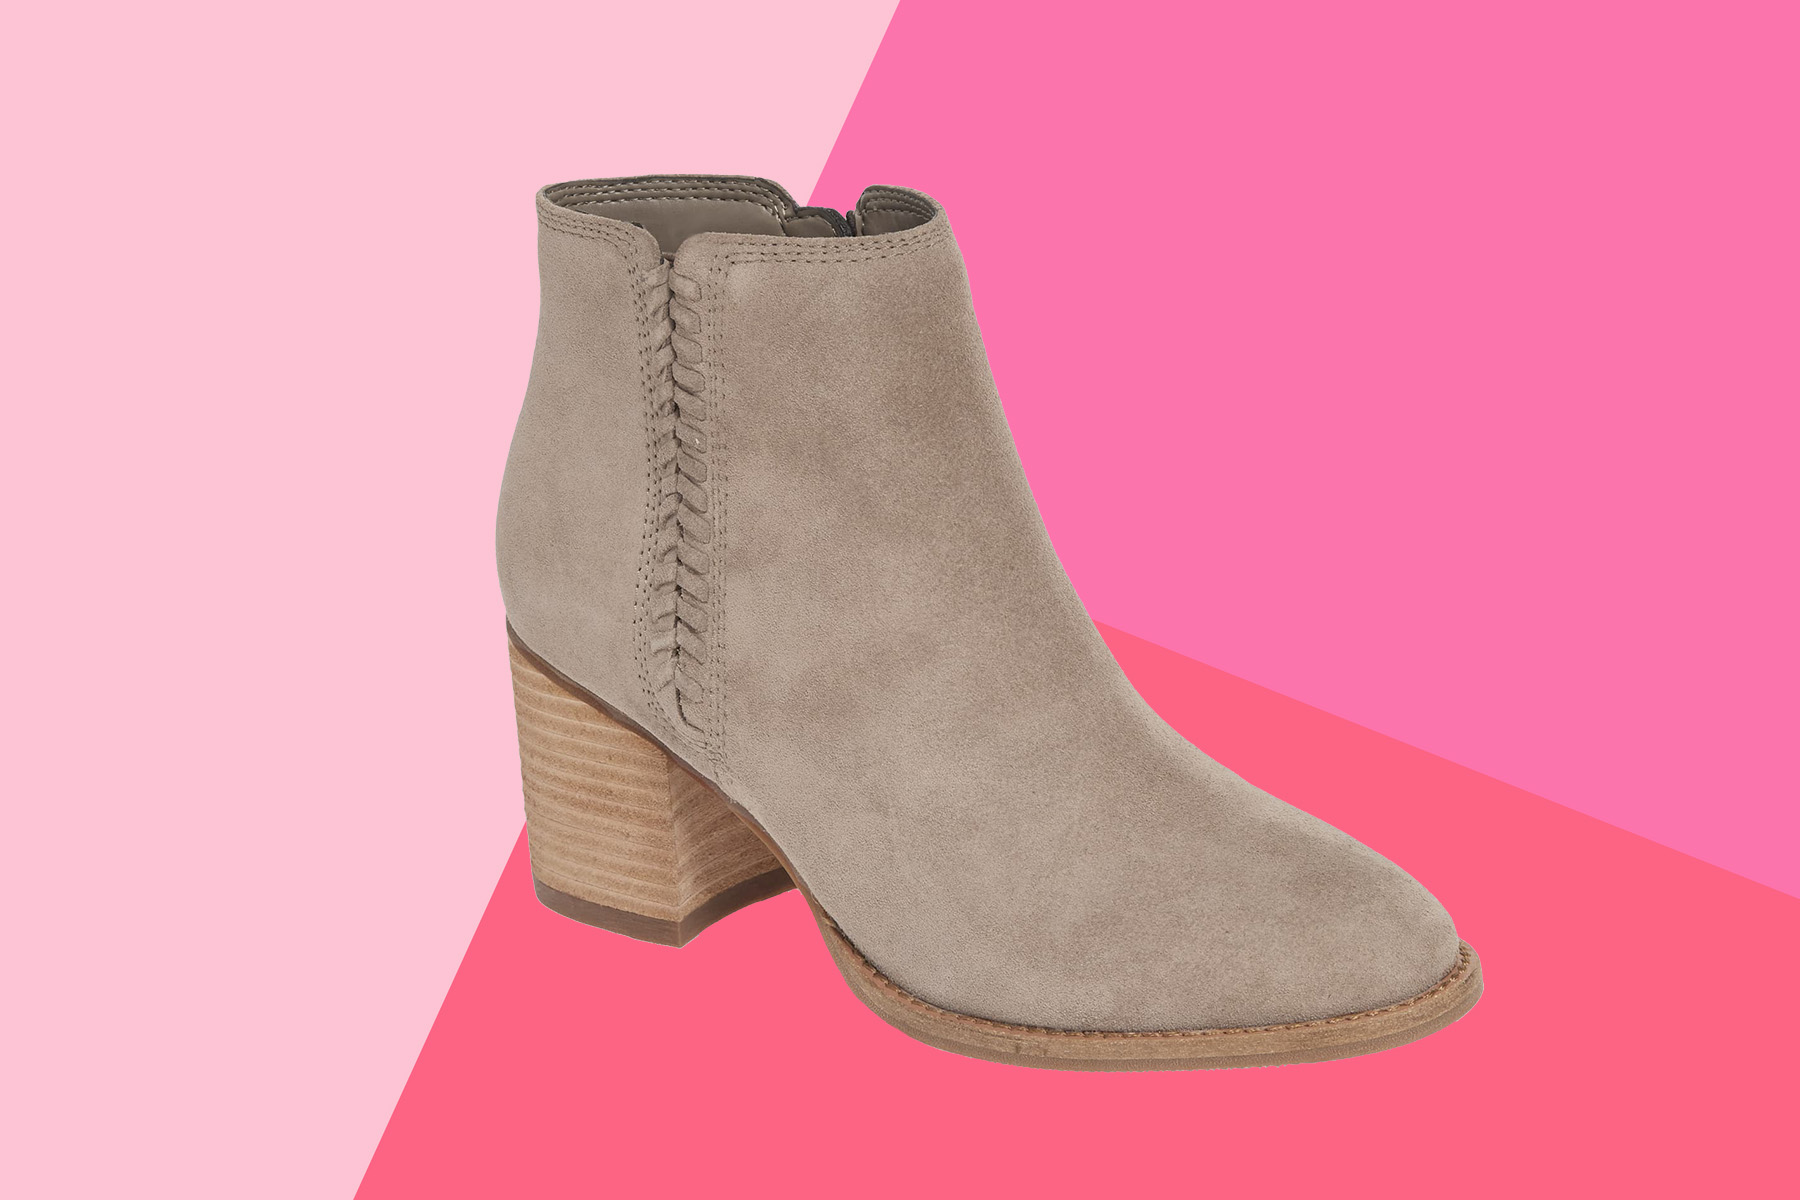 Nordstrom Shoppers Can't Get Enough of These Waterproof Booties That